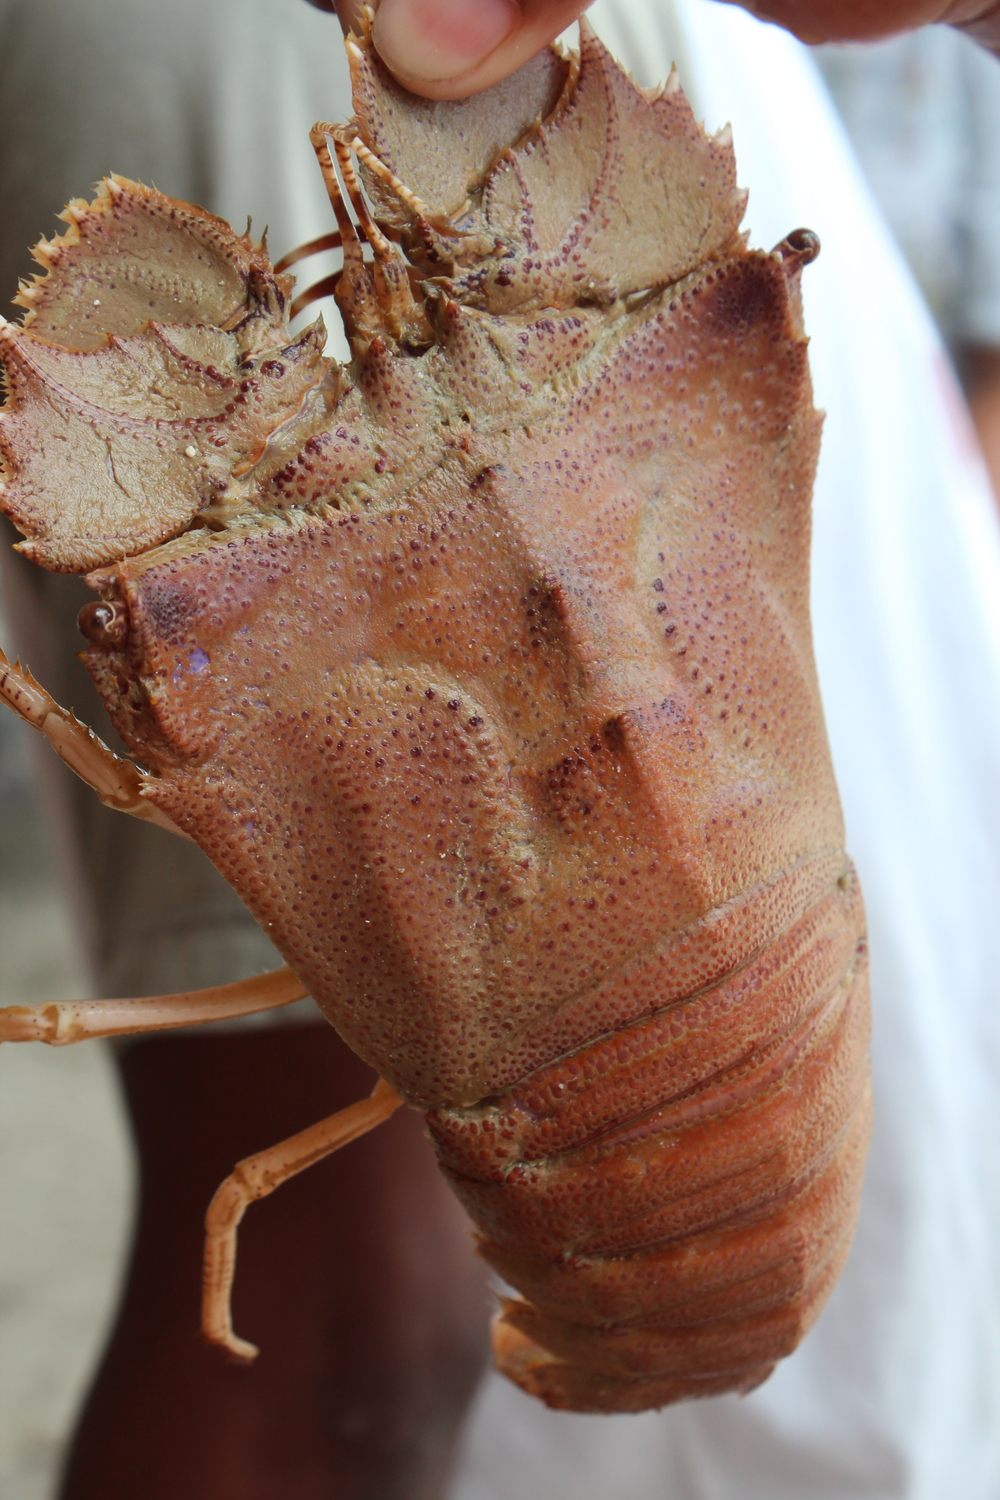 Slipper (tsinelas) lobster, Palawan, Philippines